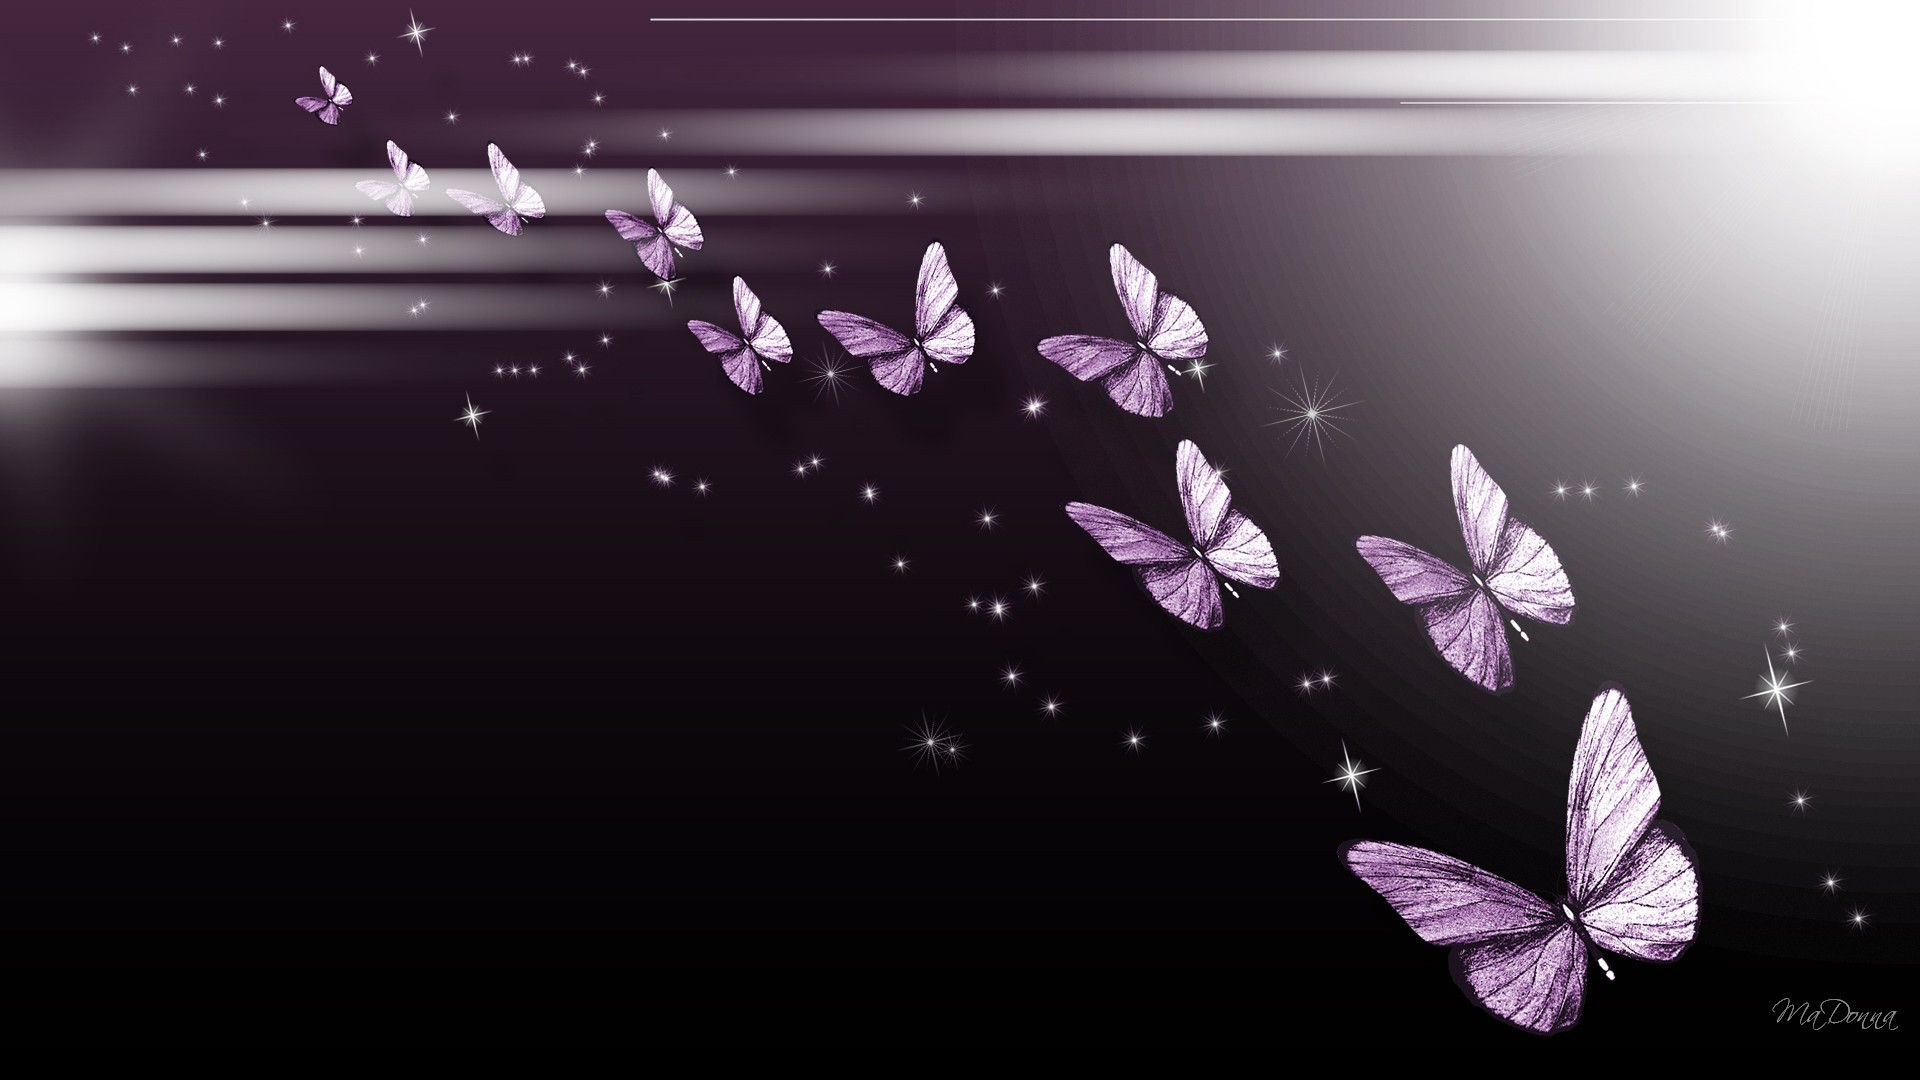 Black Butterfly Wallpapers Top Free Black Butterfly Backgrounds Wallpaperaccess